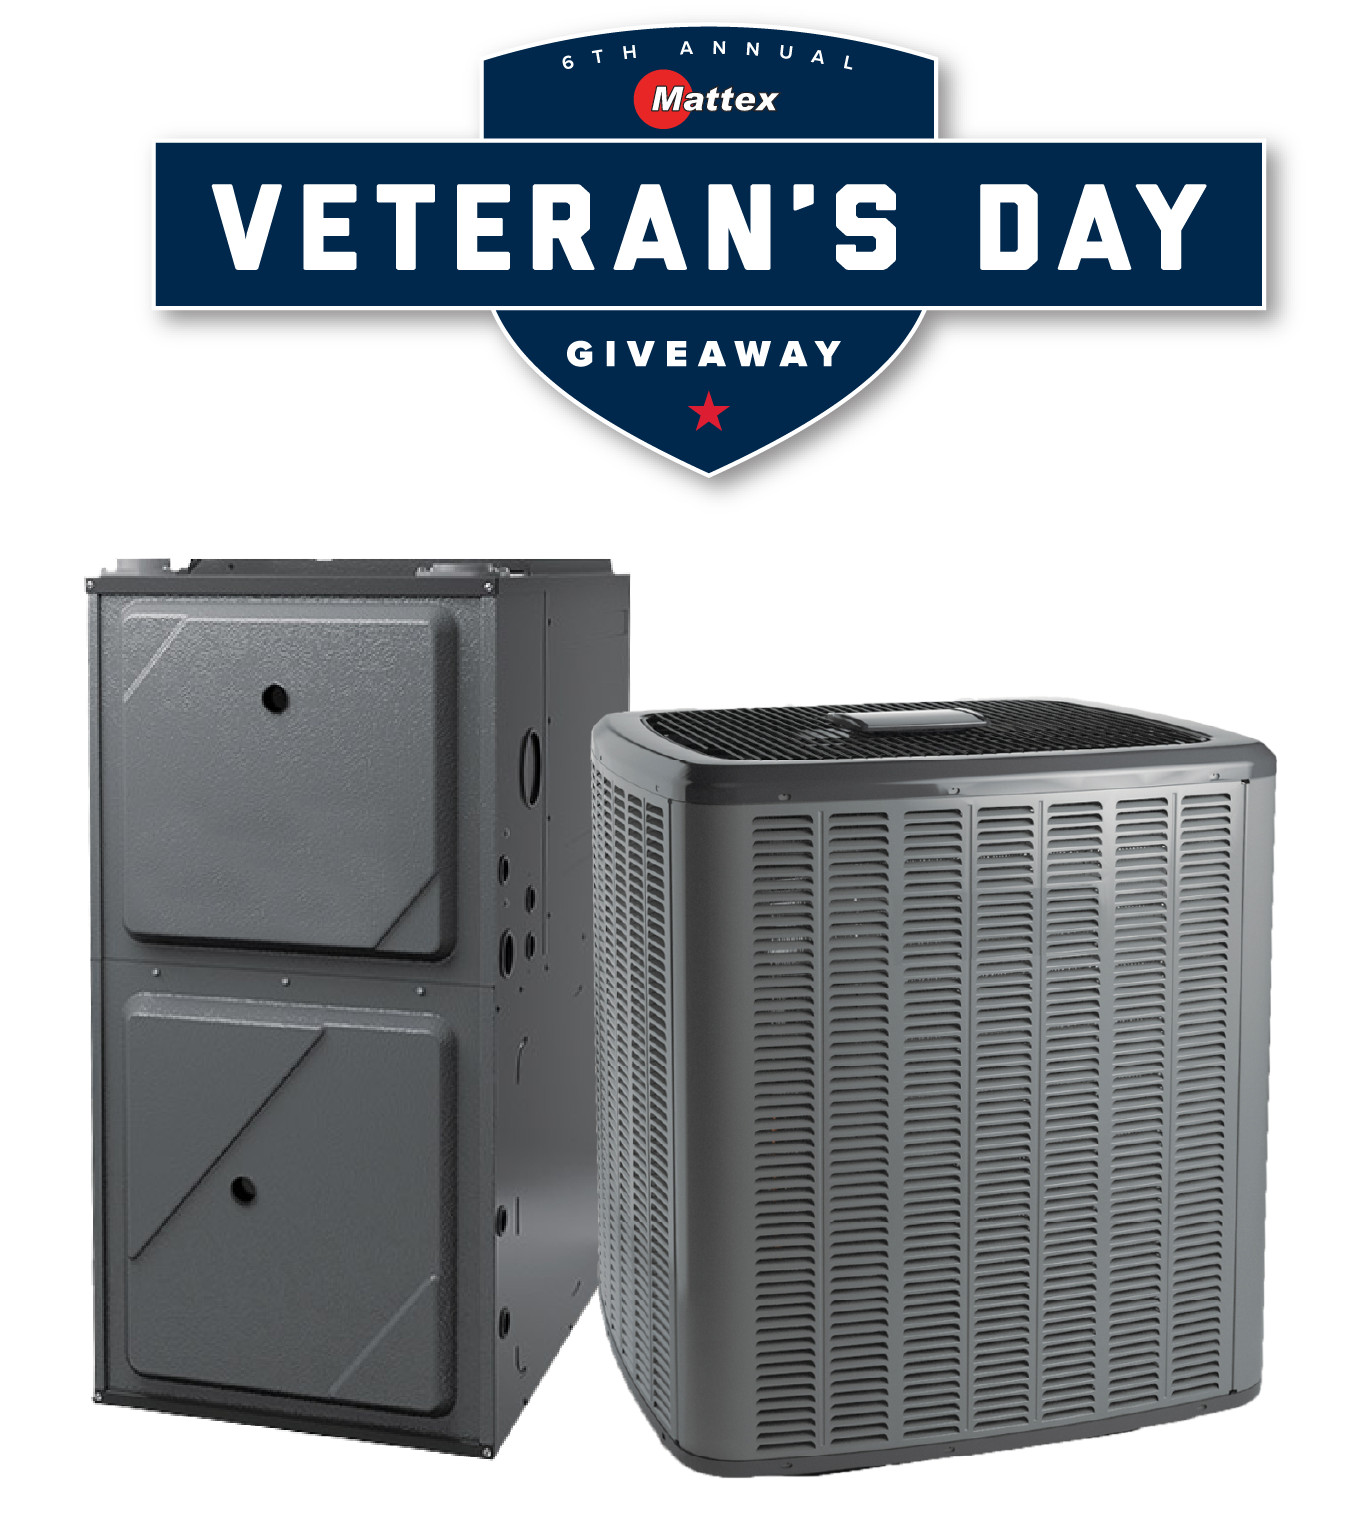 Mattex's Annual Veteran's Day Giveaway